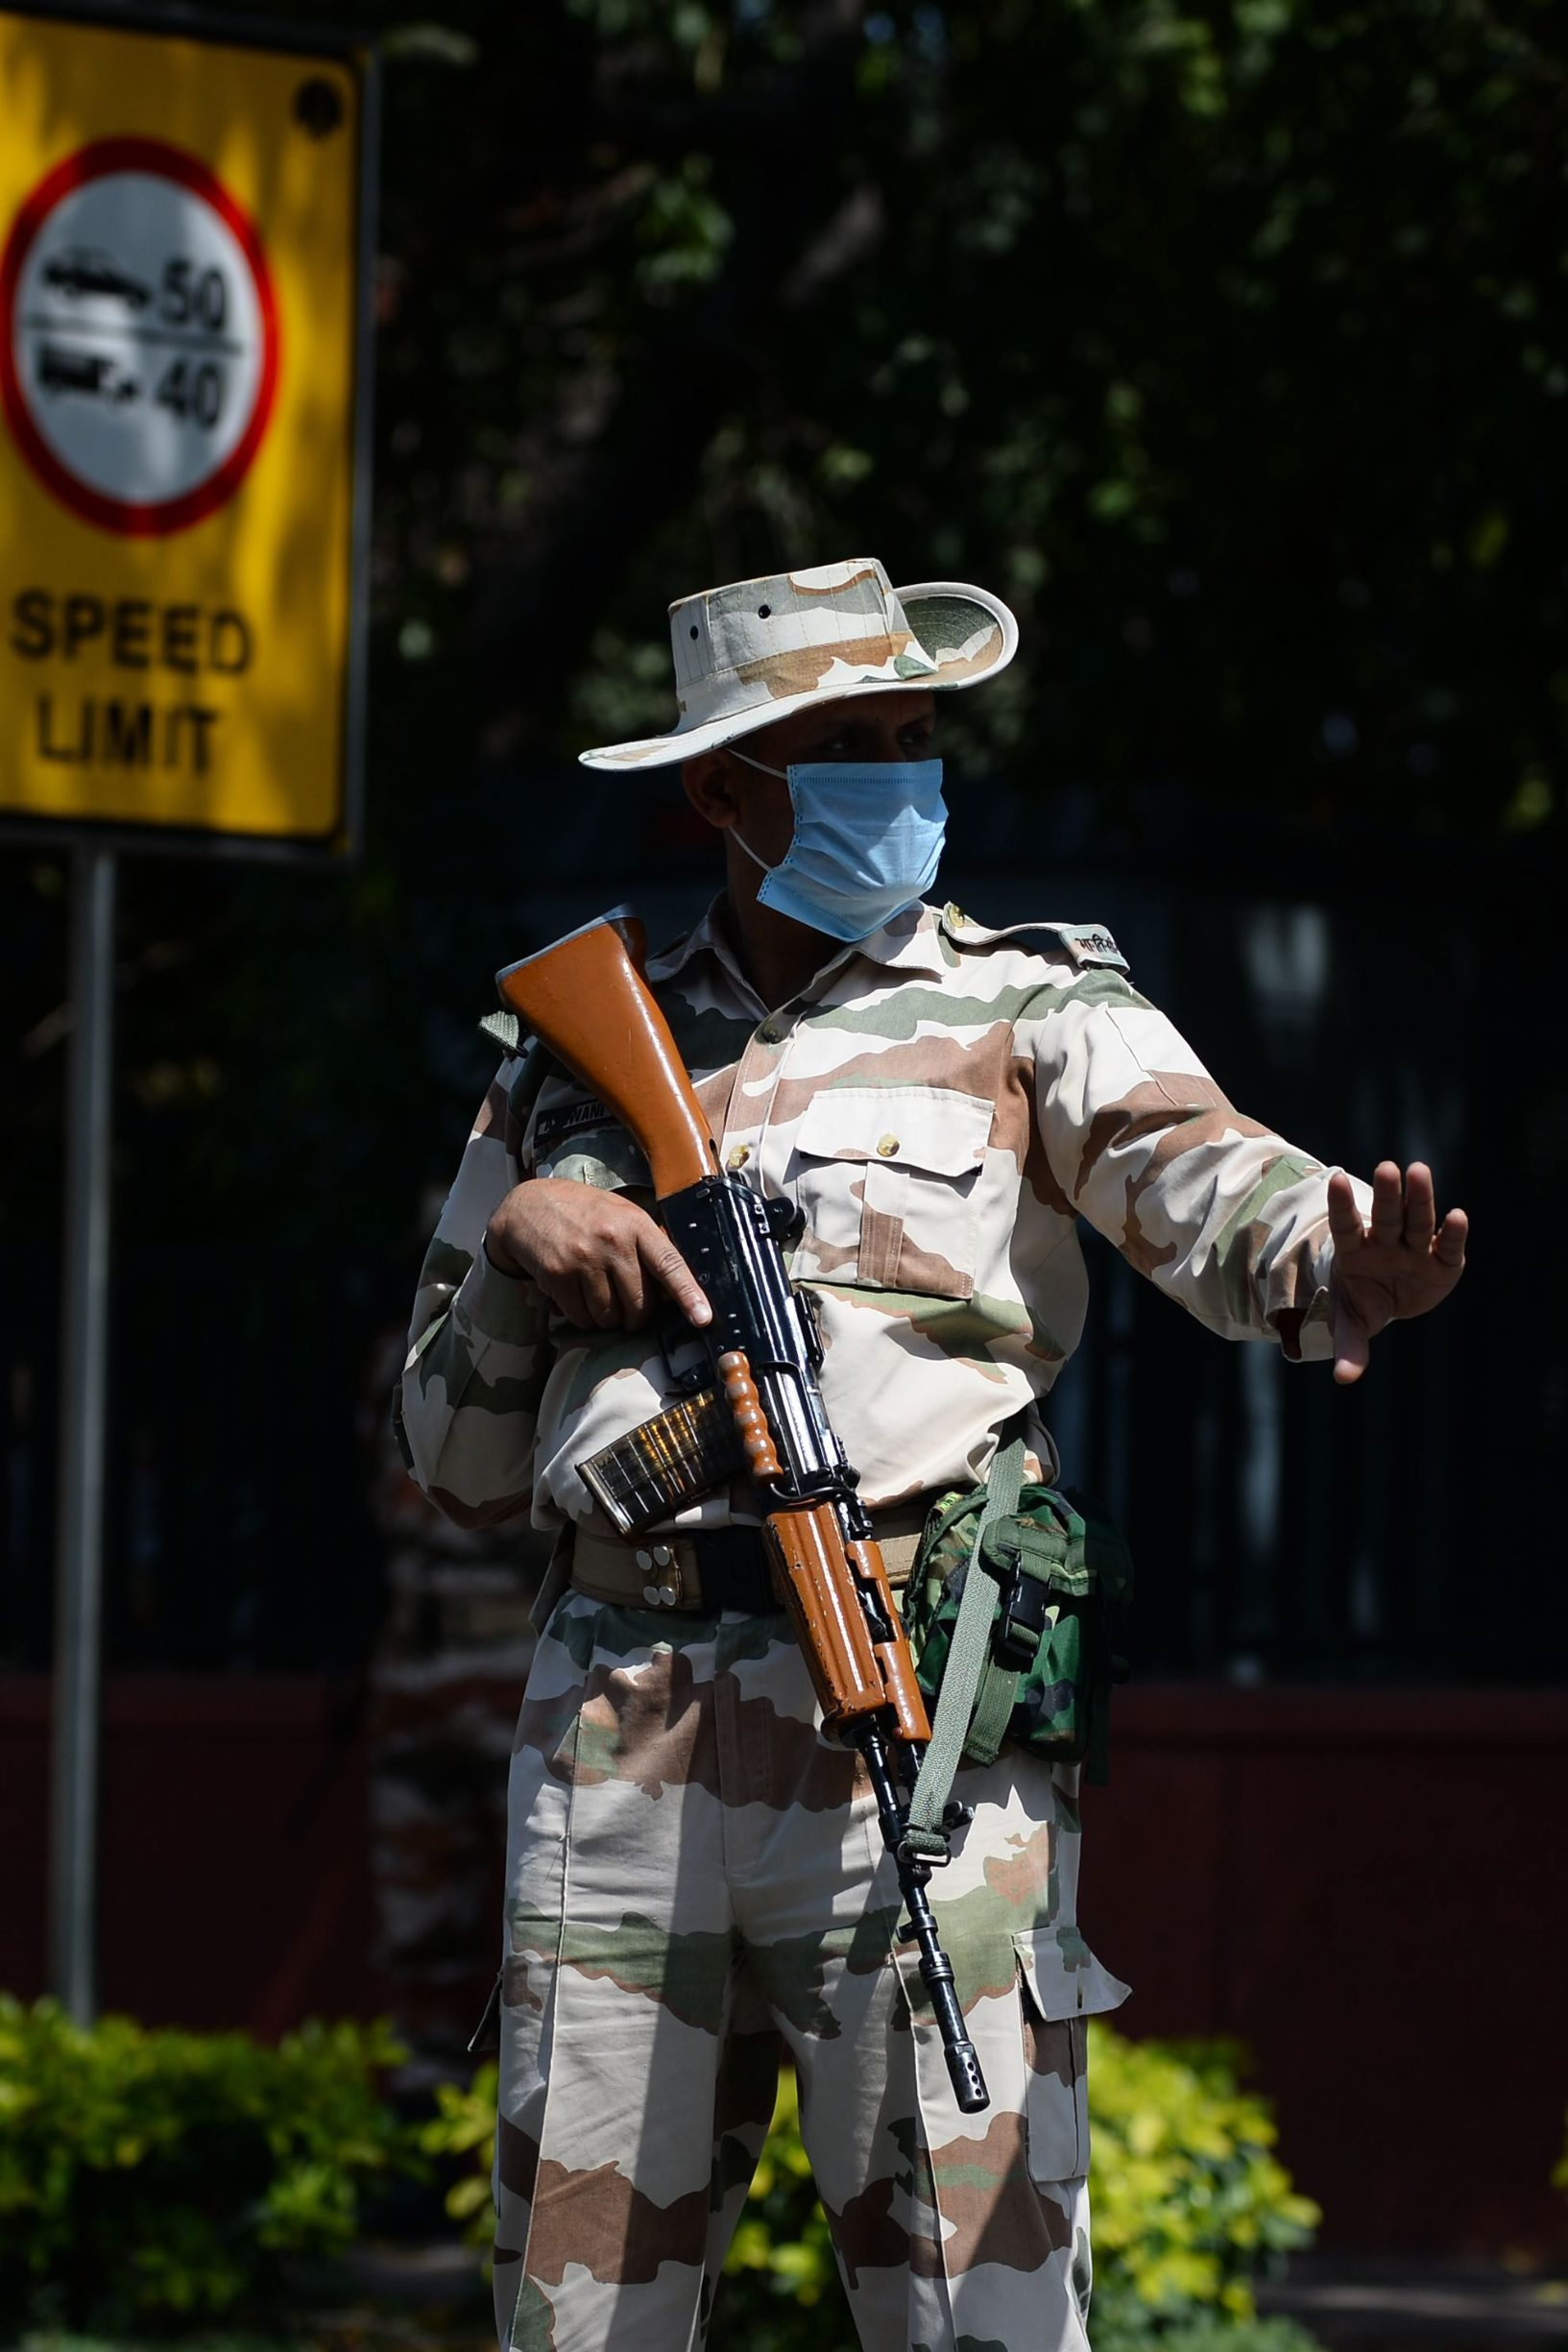 A security personnel wearing a facemask gestures to stop a motorists at a roadblock during the first day of a 21-day government-imposed nationwide lockdown as a preventive measure against the COVID-19 coronavirus in New Delhi on March 25, 2020. - India's billion-plus population went into a three-week lockdown on March 25, with a third of the world now under orders to stay indoors, as the coronavirus pandemic forced Japan to postpone the Olympics until next year. (Photo by Sajjad HUSSAIN / AFP)